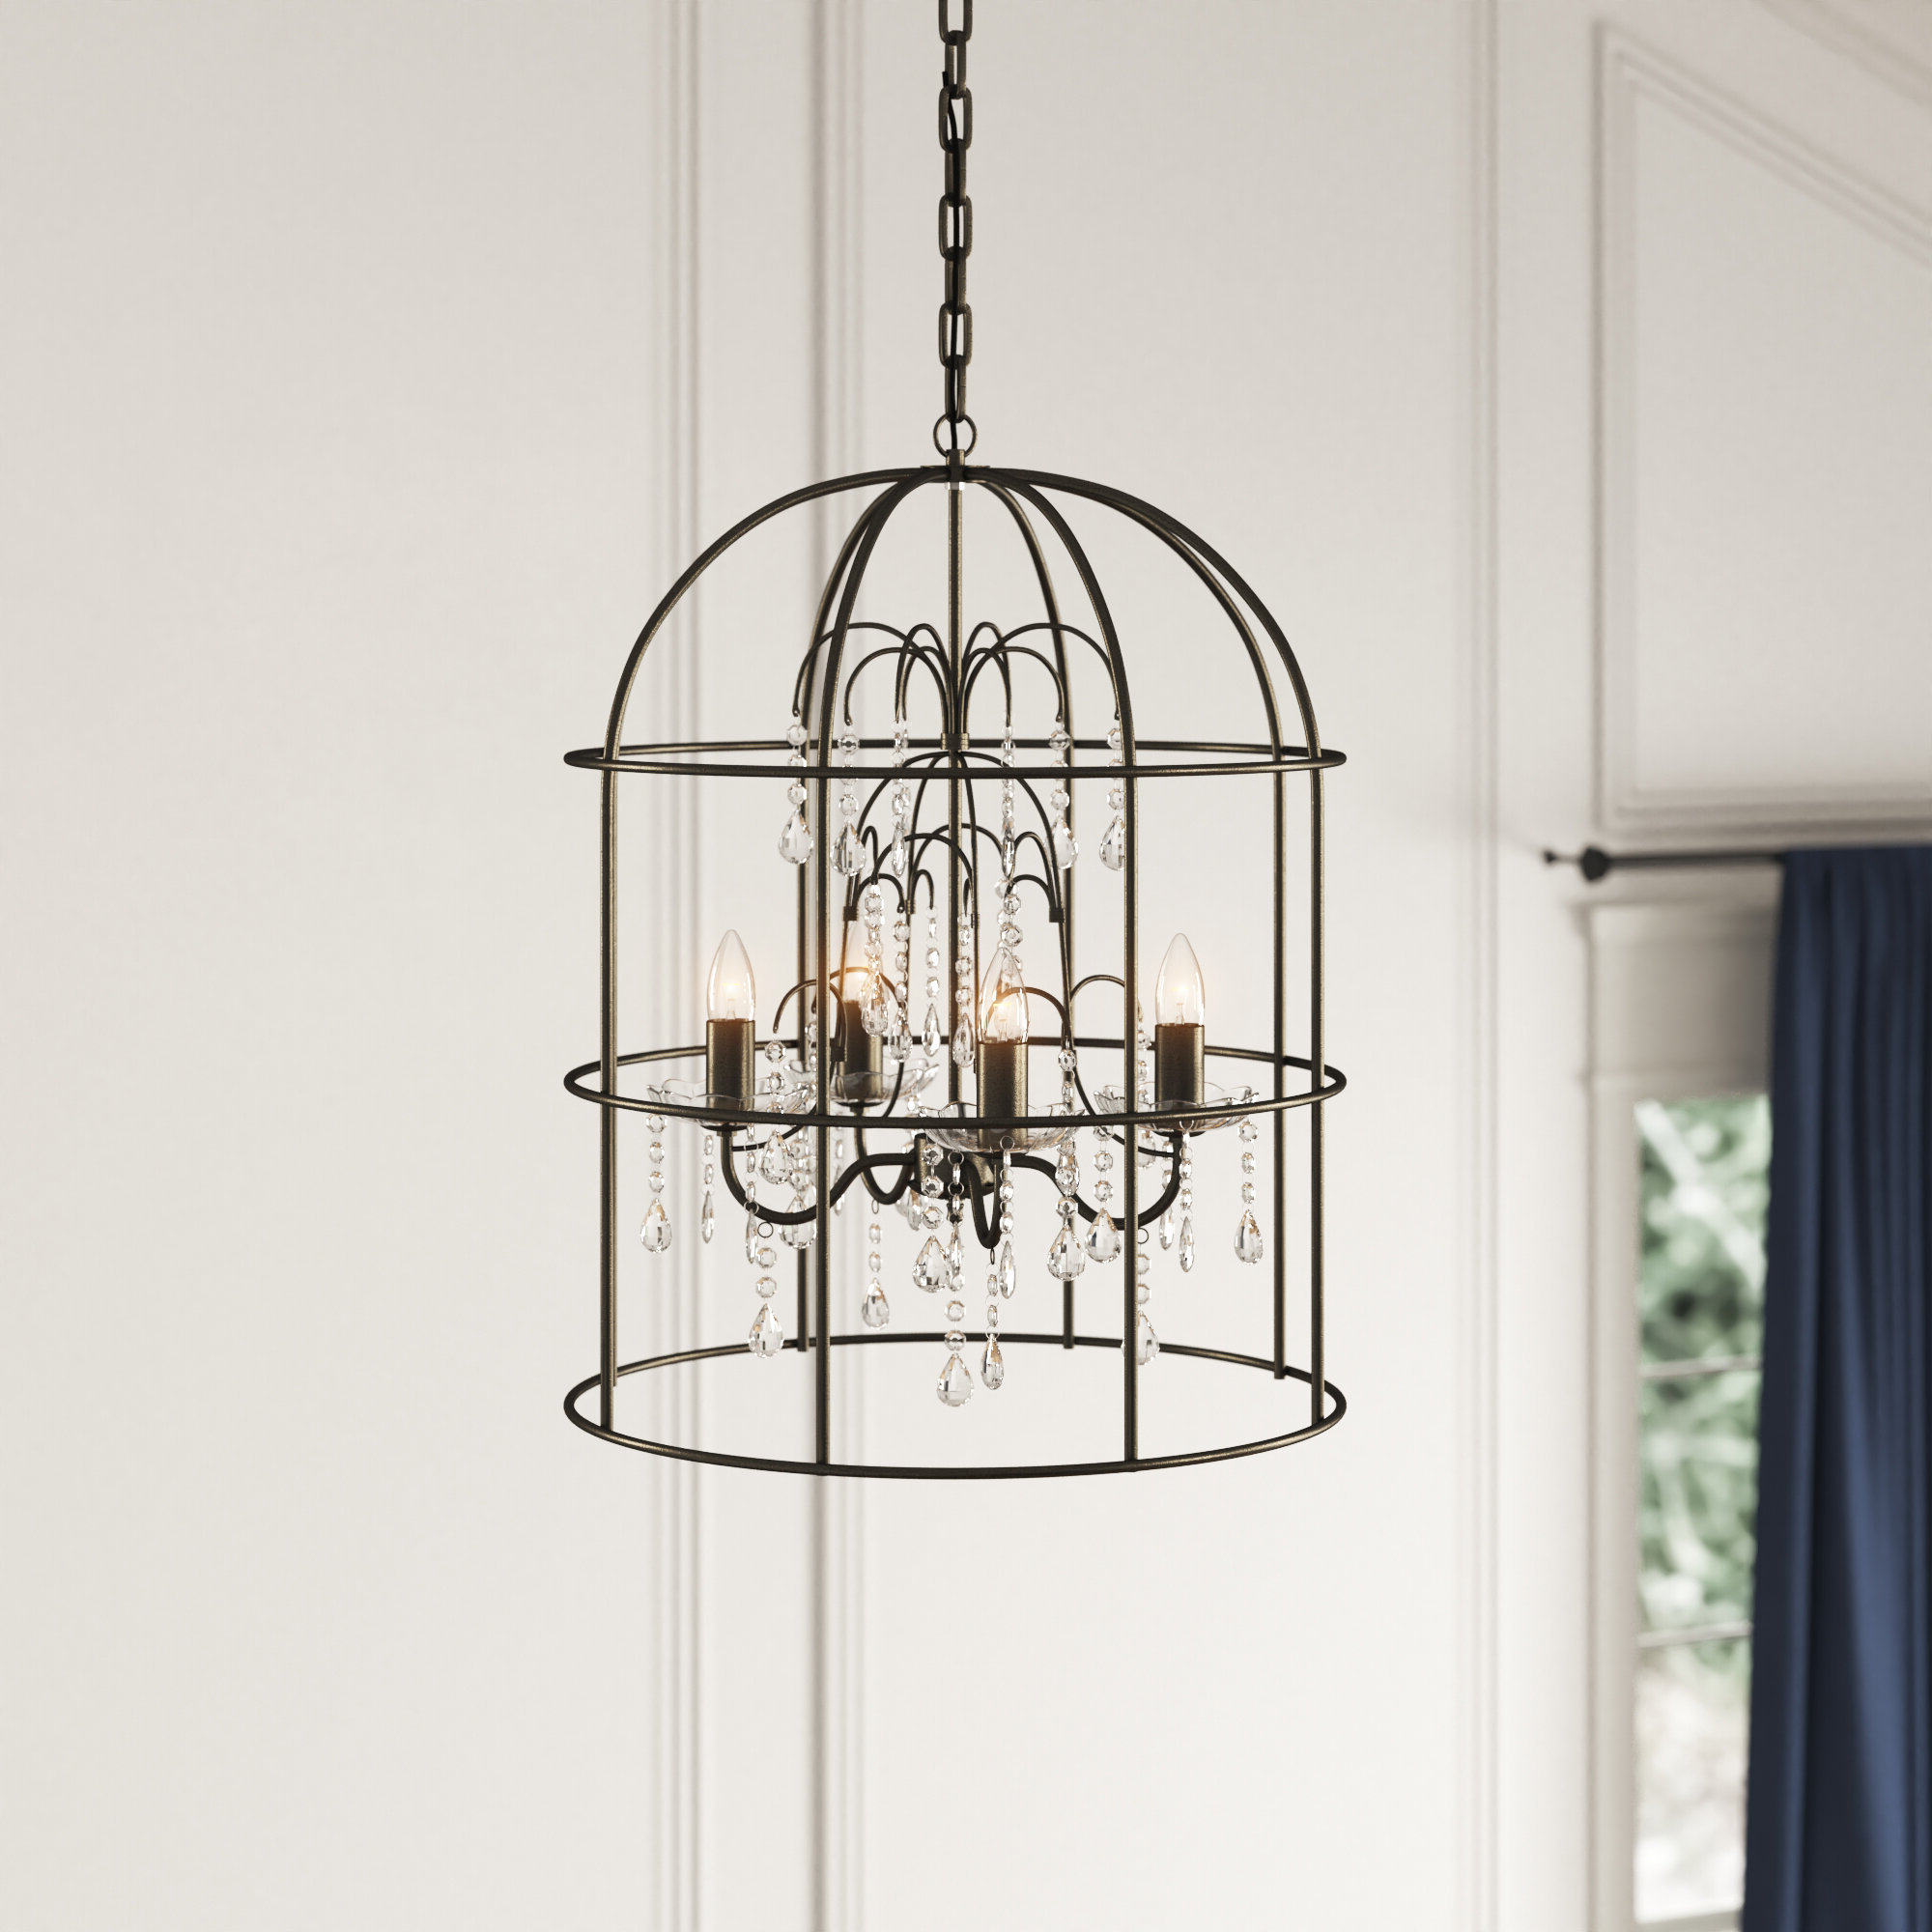 Argens 4 Light Lantern Geometric Pendant Throughout Widely Used Oriana 4 Light Single Geometric Chandeliers (View 4 of 25)